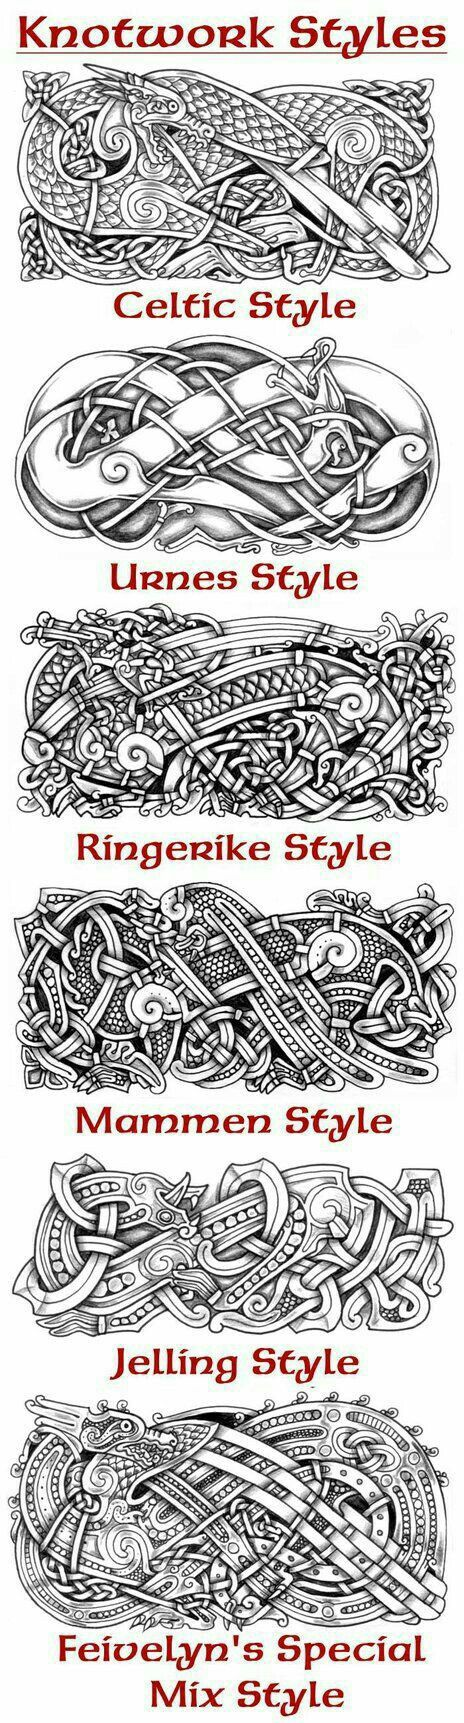 A collection of knotwork styles